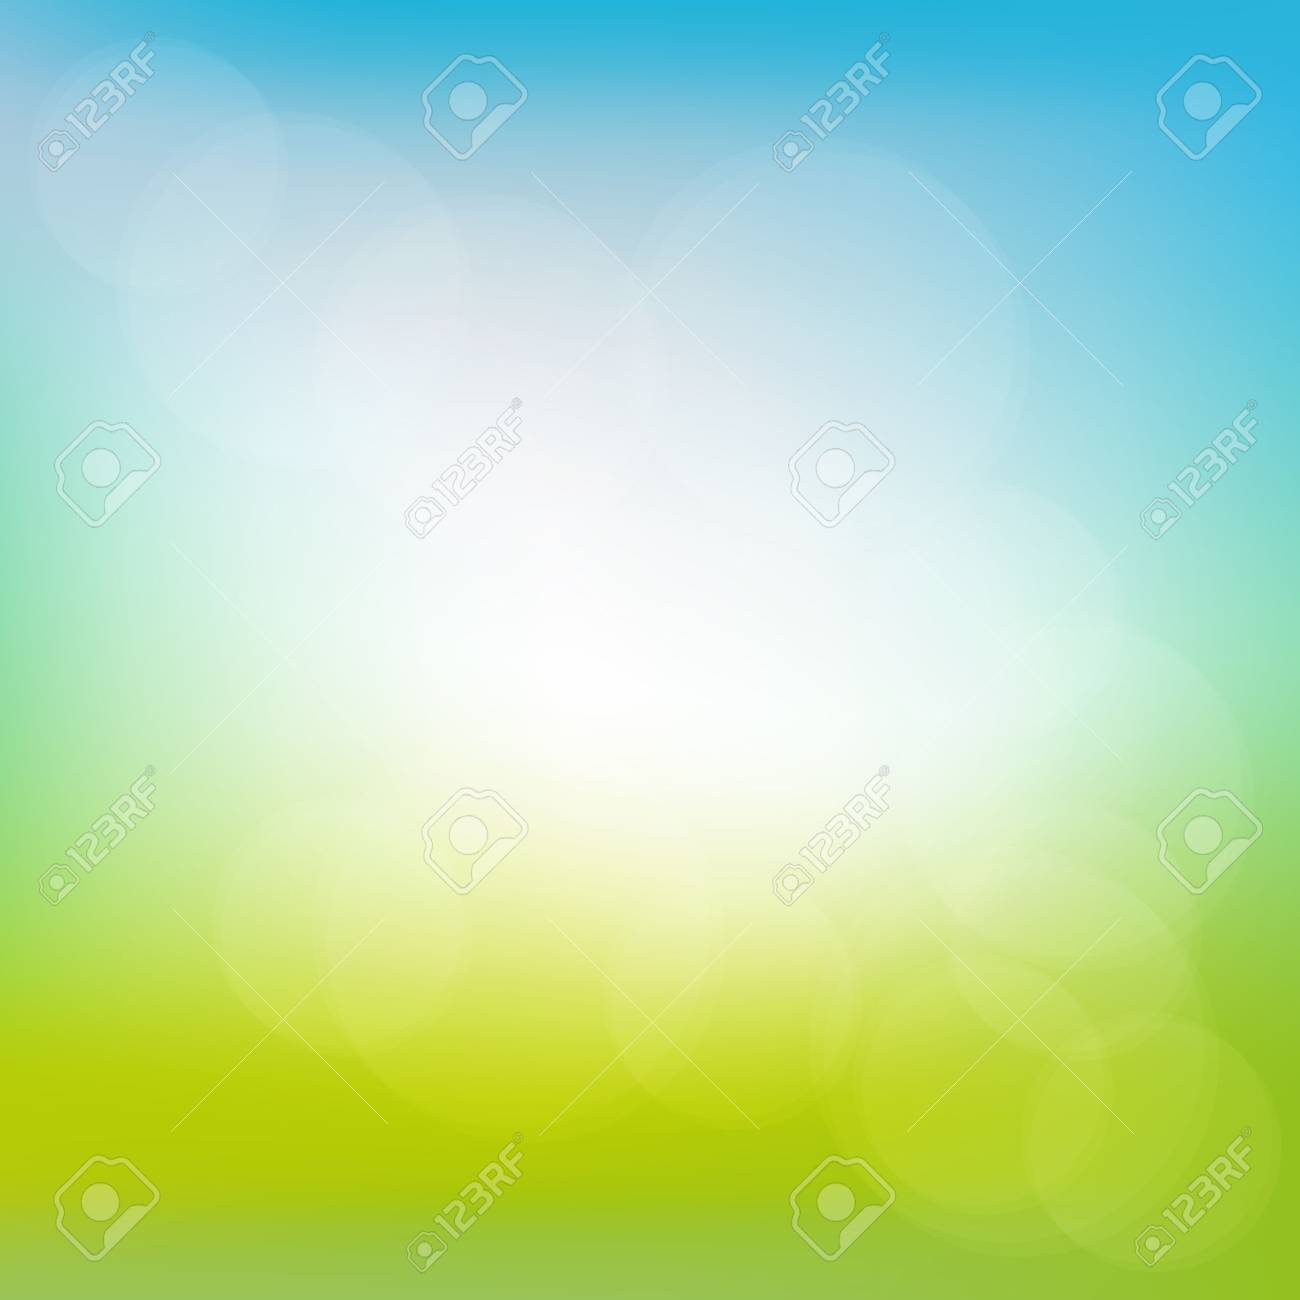 Abstract spring or summer sunny background with blue sky and green meadow, illustration - 53563942